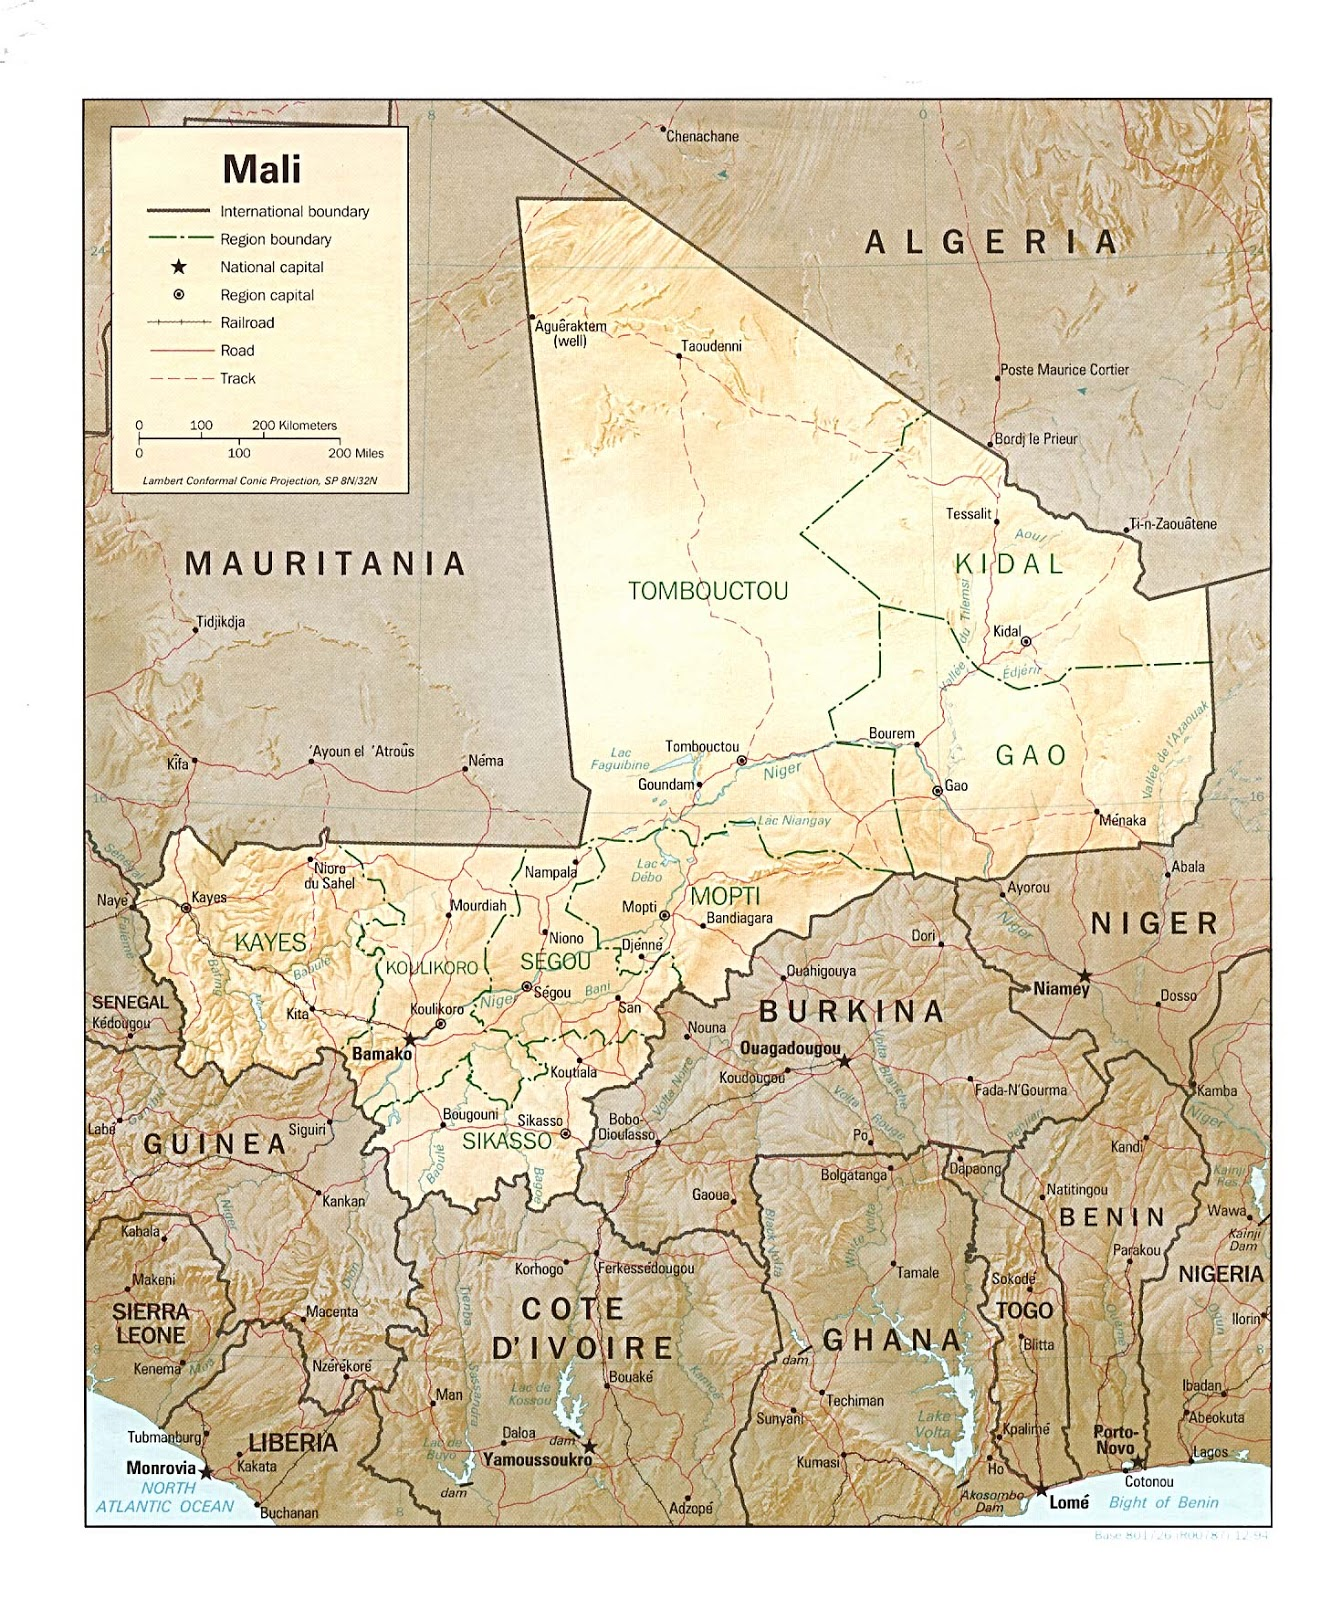 Mali Geografiske Kort Over Mali Global Encyclopedia